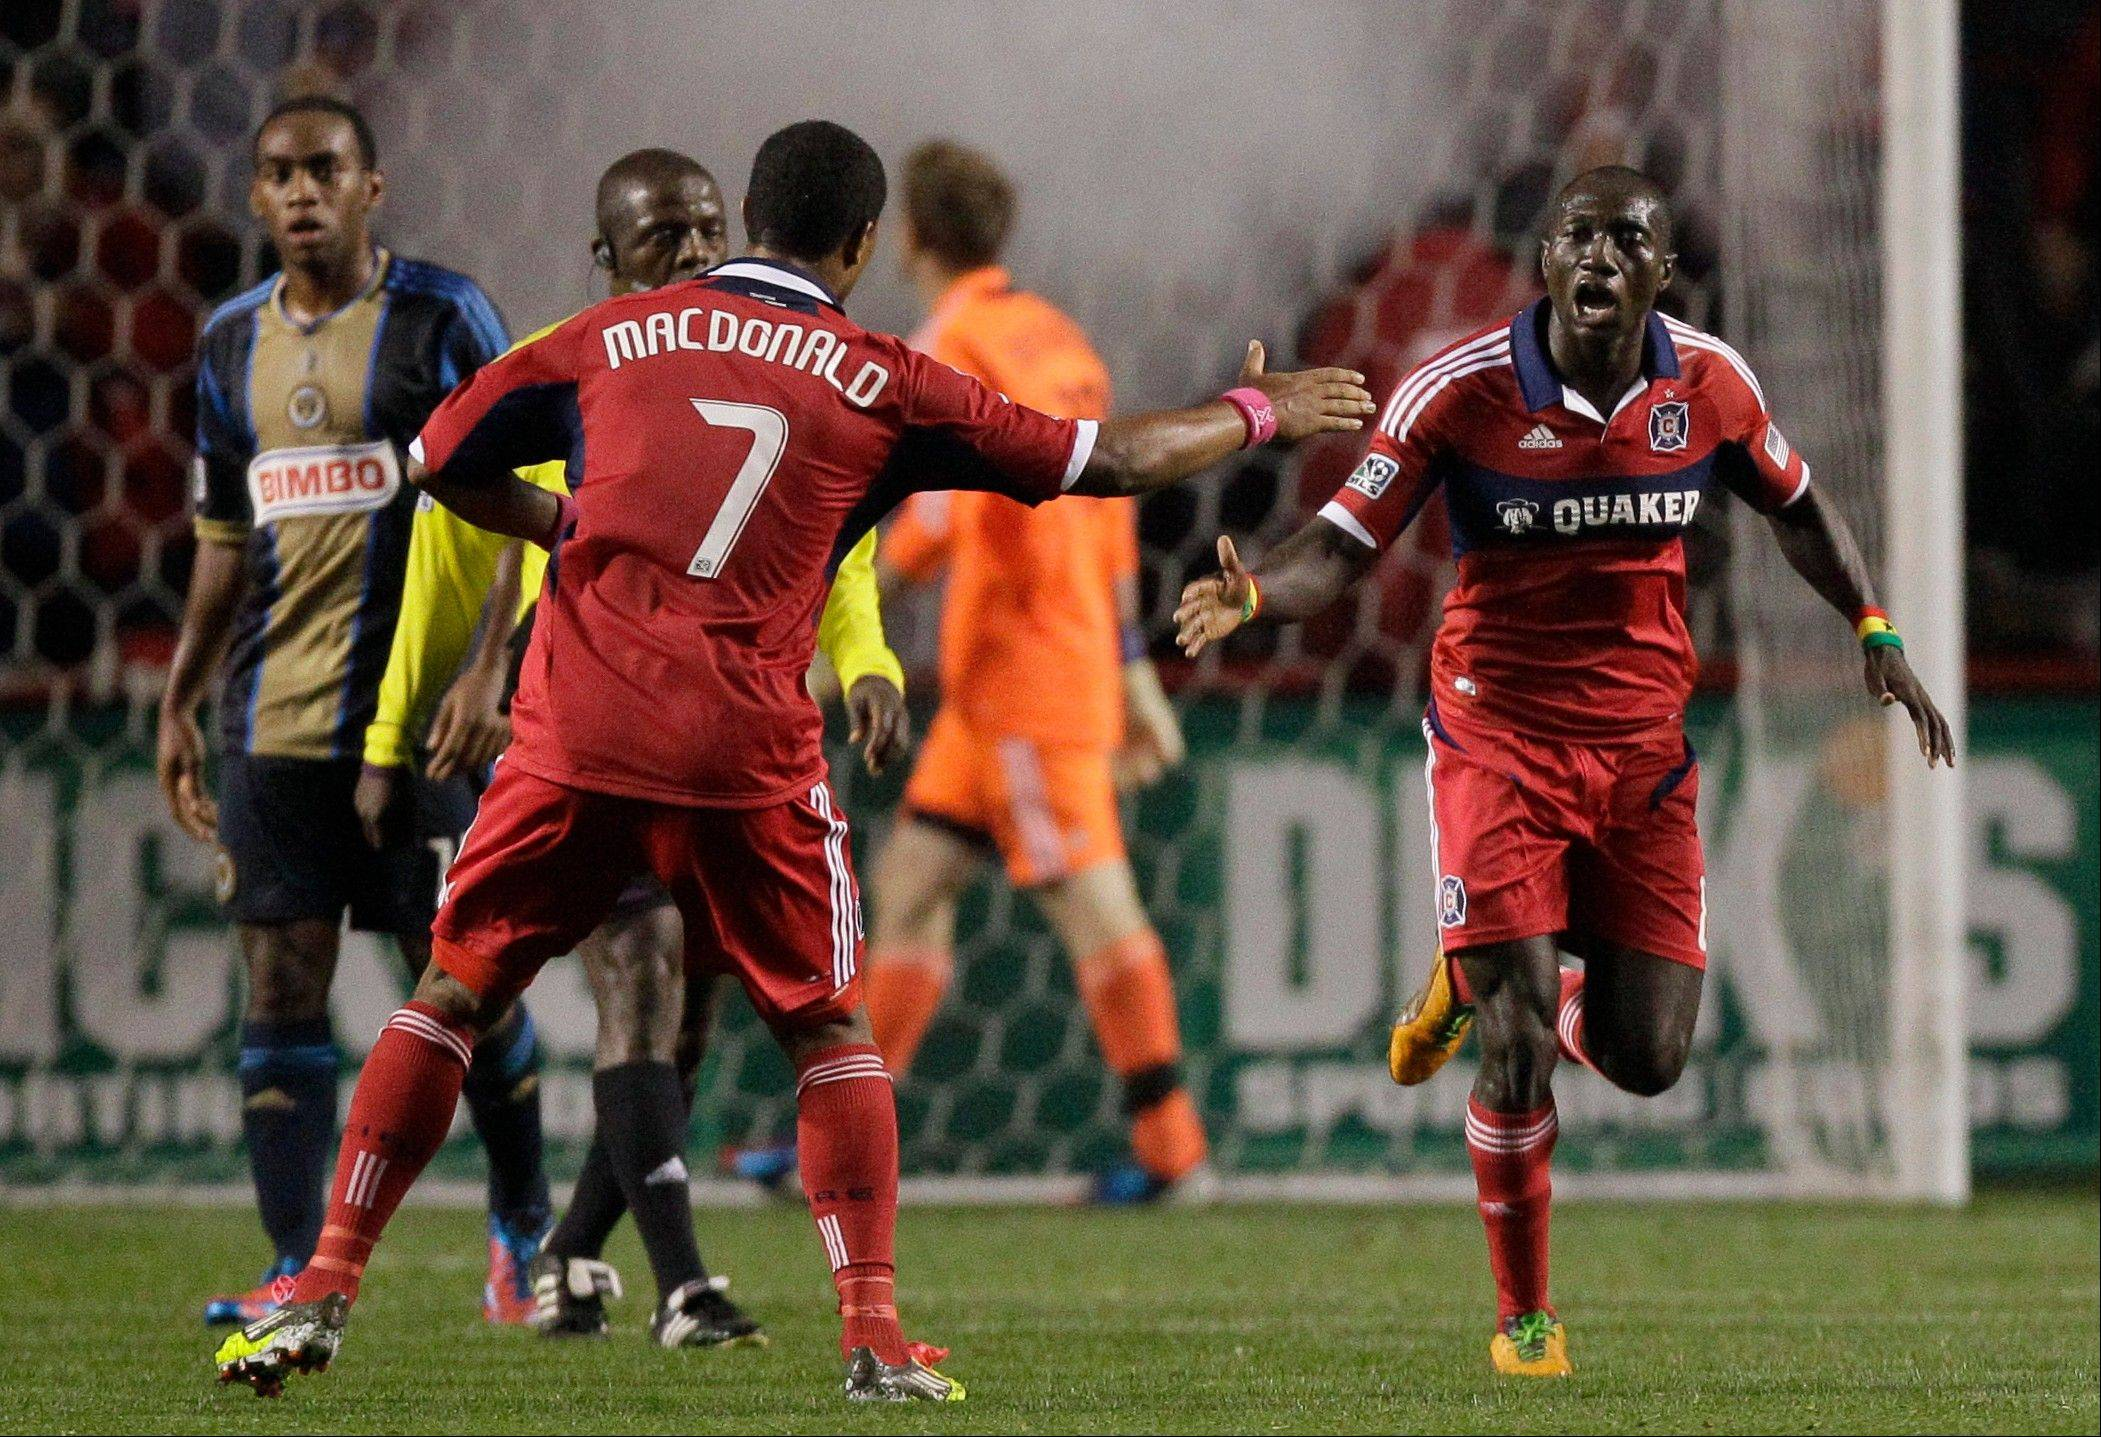 Chicago Fire forward Dominic Oduro, right, celebrates with forward Sherjill McDonald (7) after scoring a goal during the second half of an MLS soccer game against the Chicago Fire, Wednesday, Oct. 3, 2012, in Bridgeview, Ill. The Union won 3-1. (AP Photo/Nam Y. Huh)